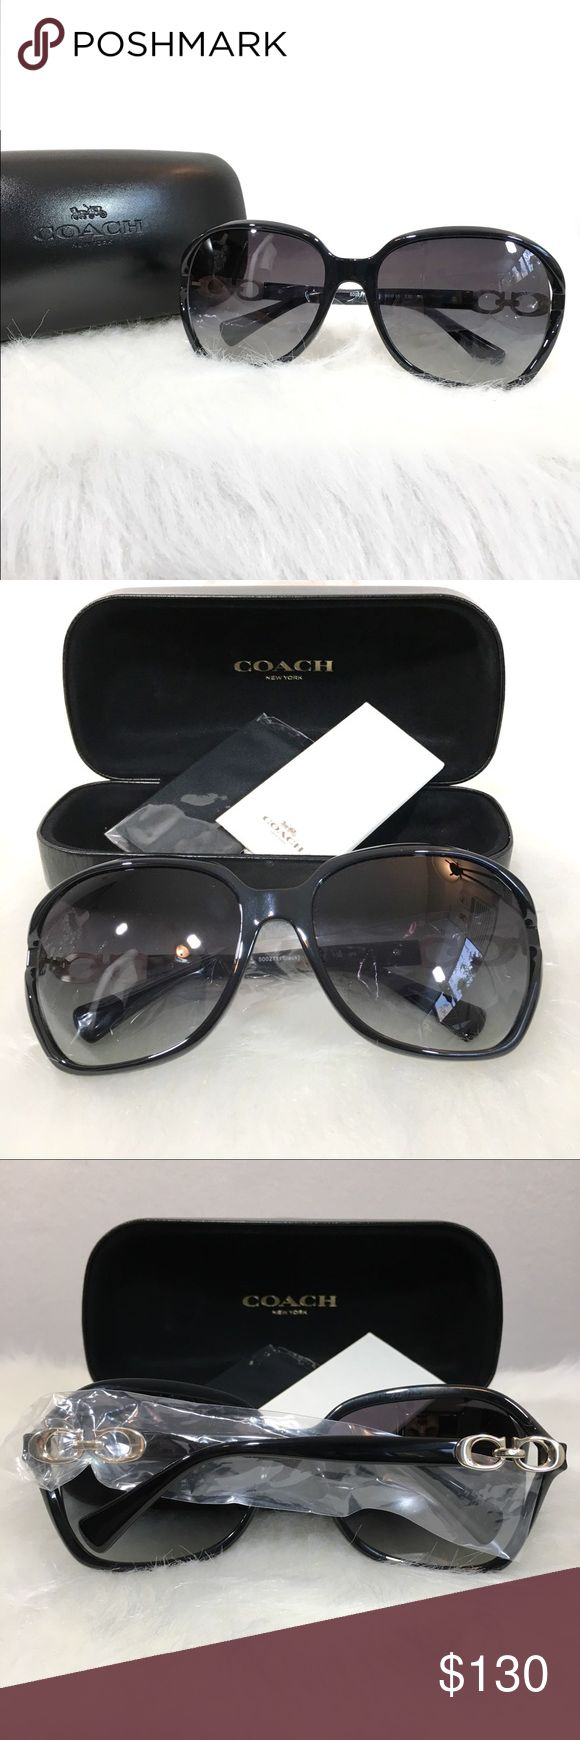 "🆕 COACH $195 Black Kissing Signature C Sunglasses NEW! $195 COACH Women's Dark Black Kissing ""C"" Square Sunglasses With Case   Model # Hc8145 (L948)  MSRP $195  Condition: Brand new, never used. Includes hard-case & cleaning cloth.  Details:  * 100% UV protection * Gradient lenses * Packaged in a protective Coach case with microfiber cleaning cloth  Coach is a modern american luxury brand with a rich heritage rooted in quality and craftsmanship. All over the world, the coach name is…"